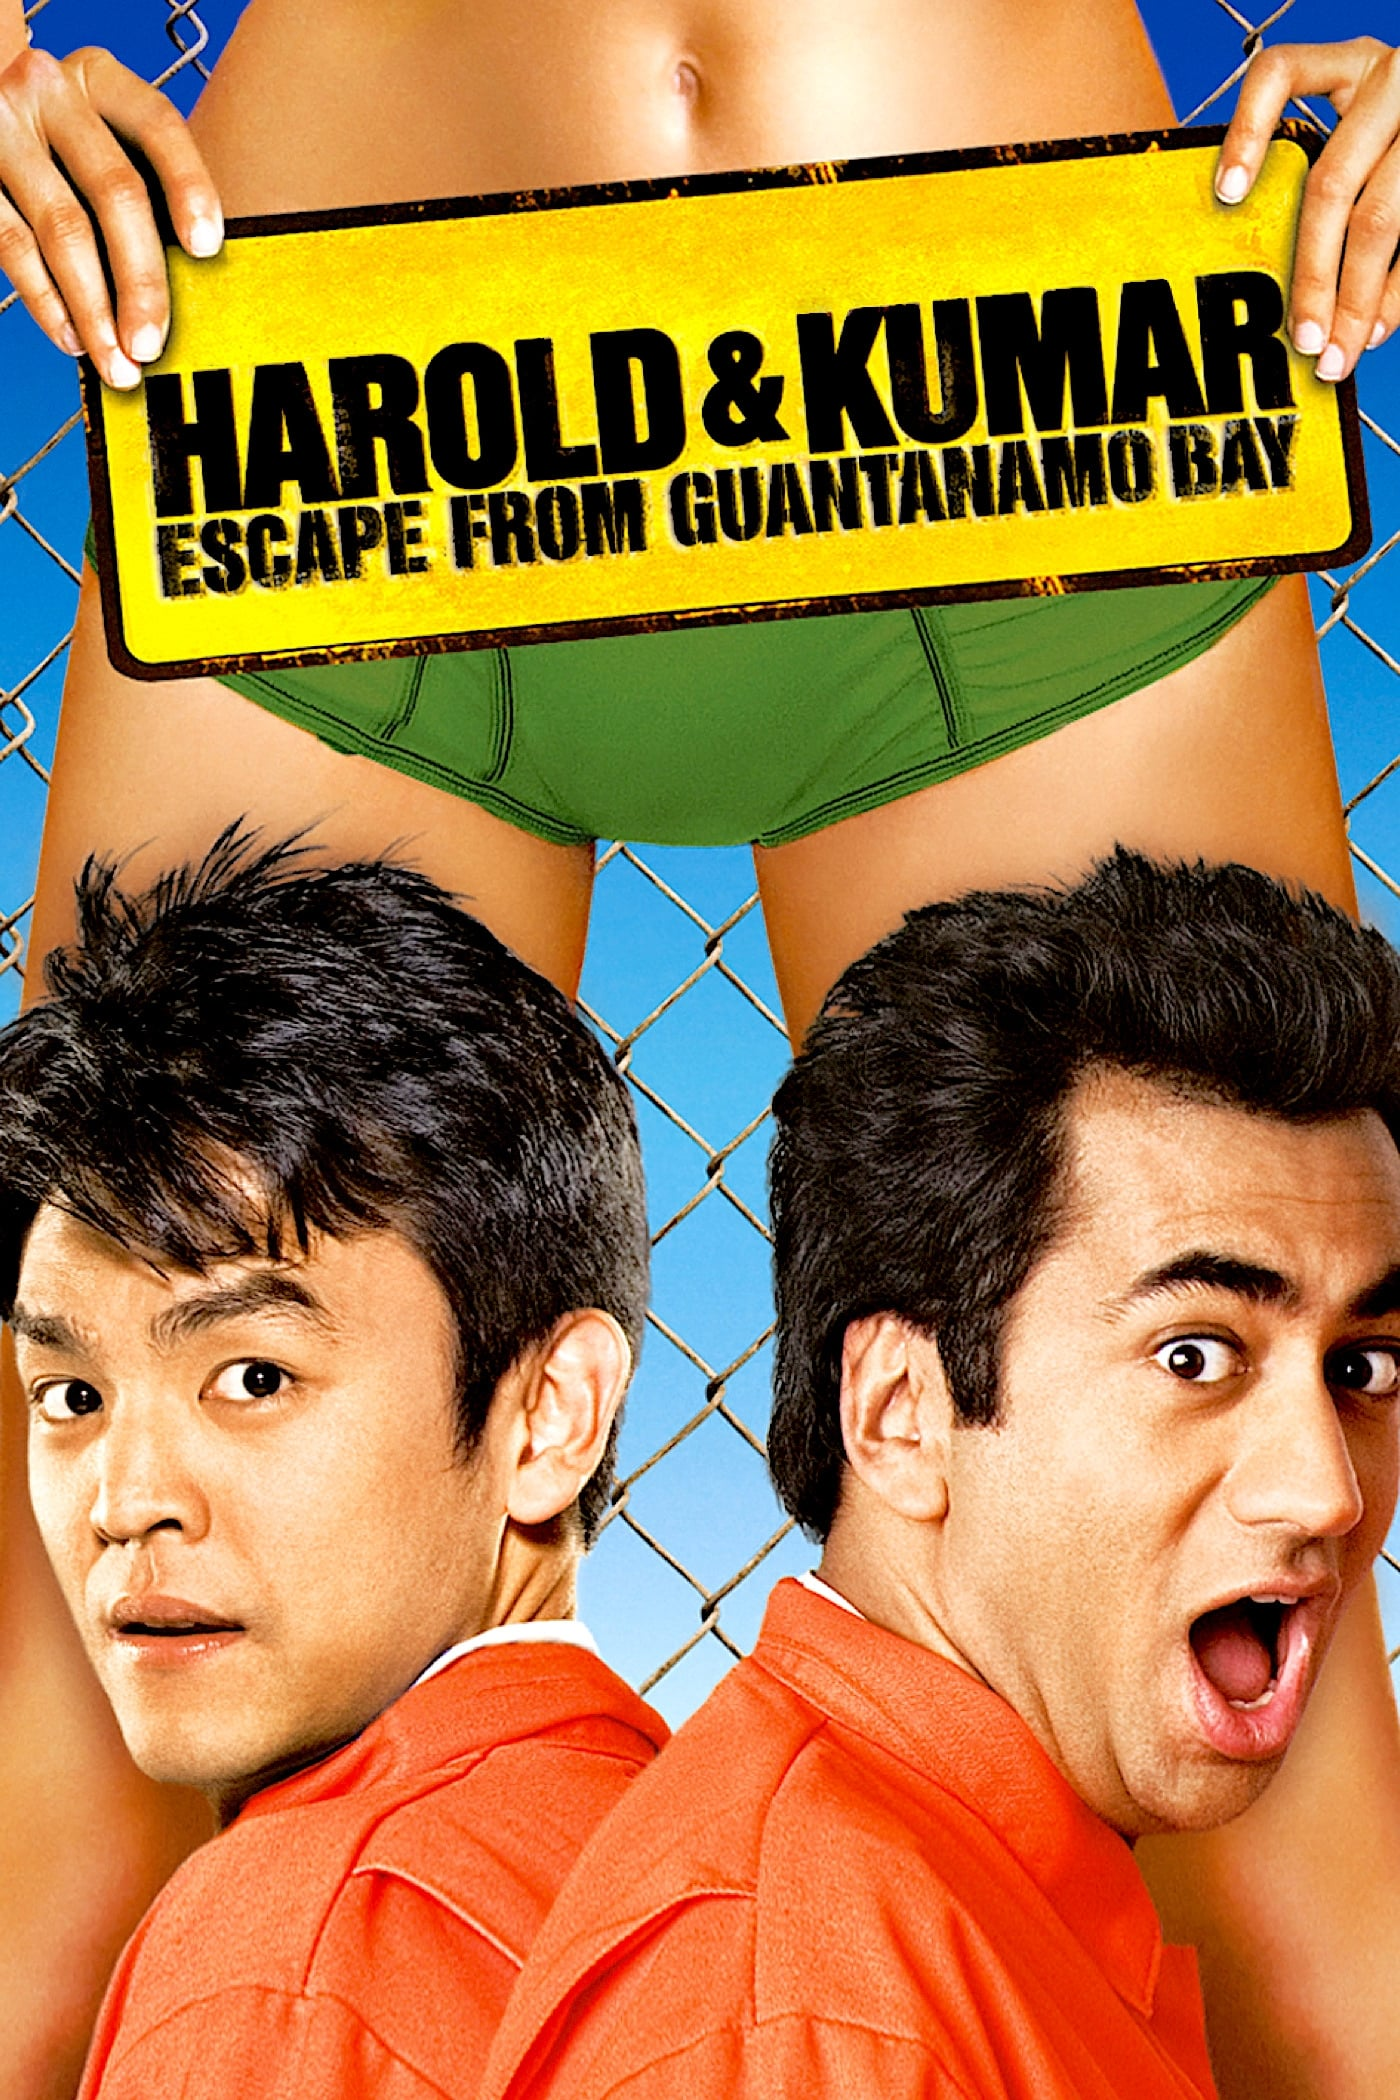 Harold And Kumar Escape From Guantanamo Bay Unr Sp Ed Go to White Castle Extr Unr 2 Pack Movie free download HD 720p